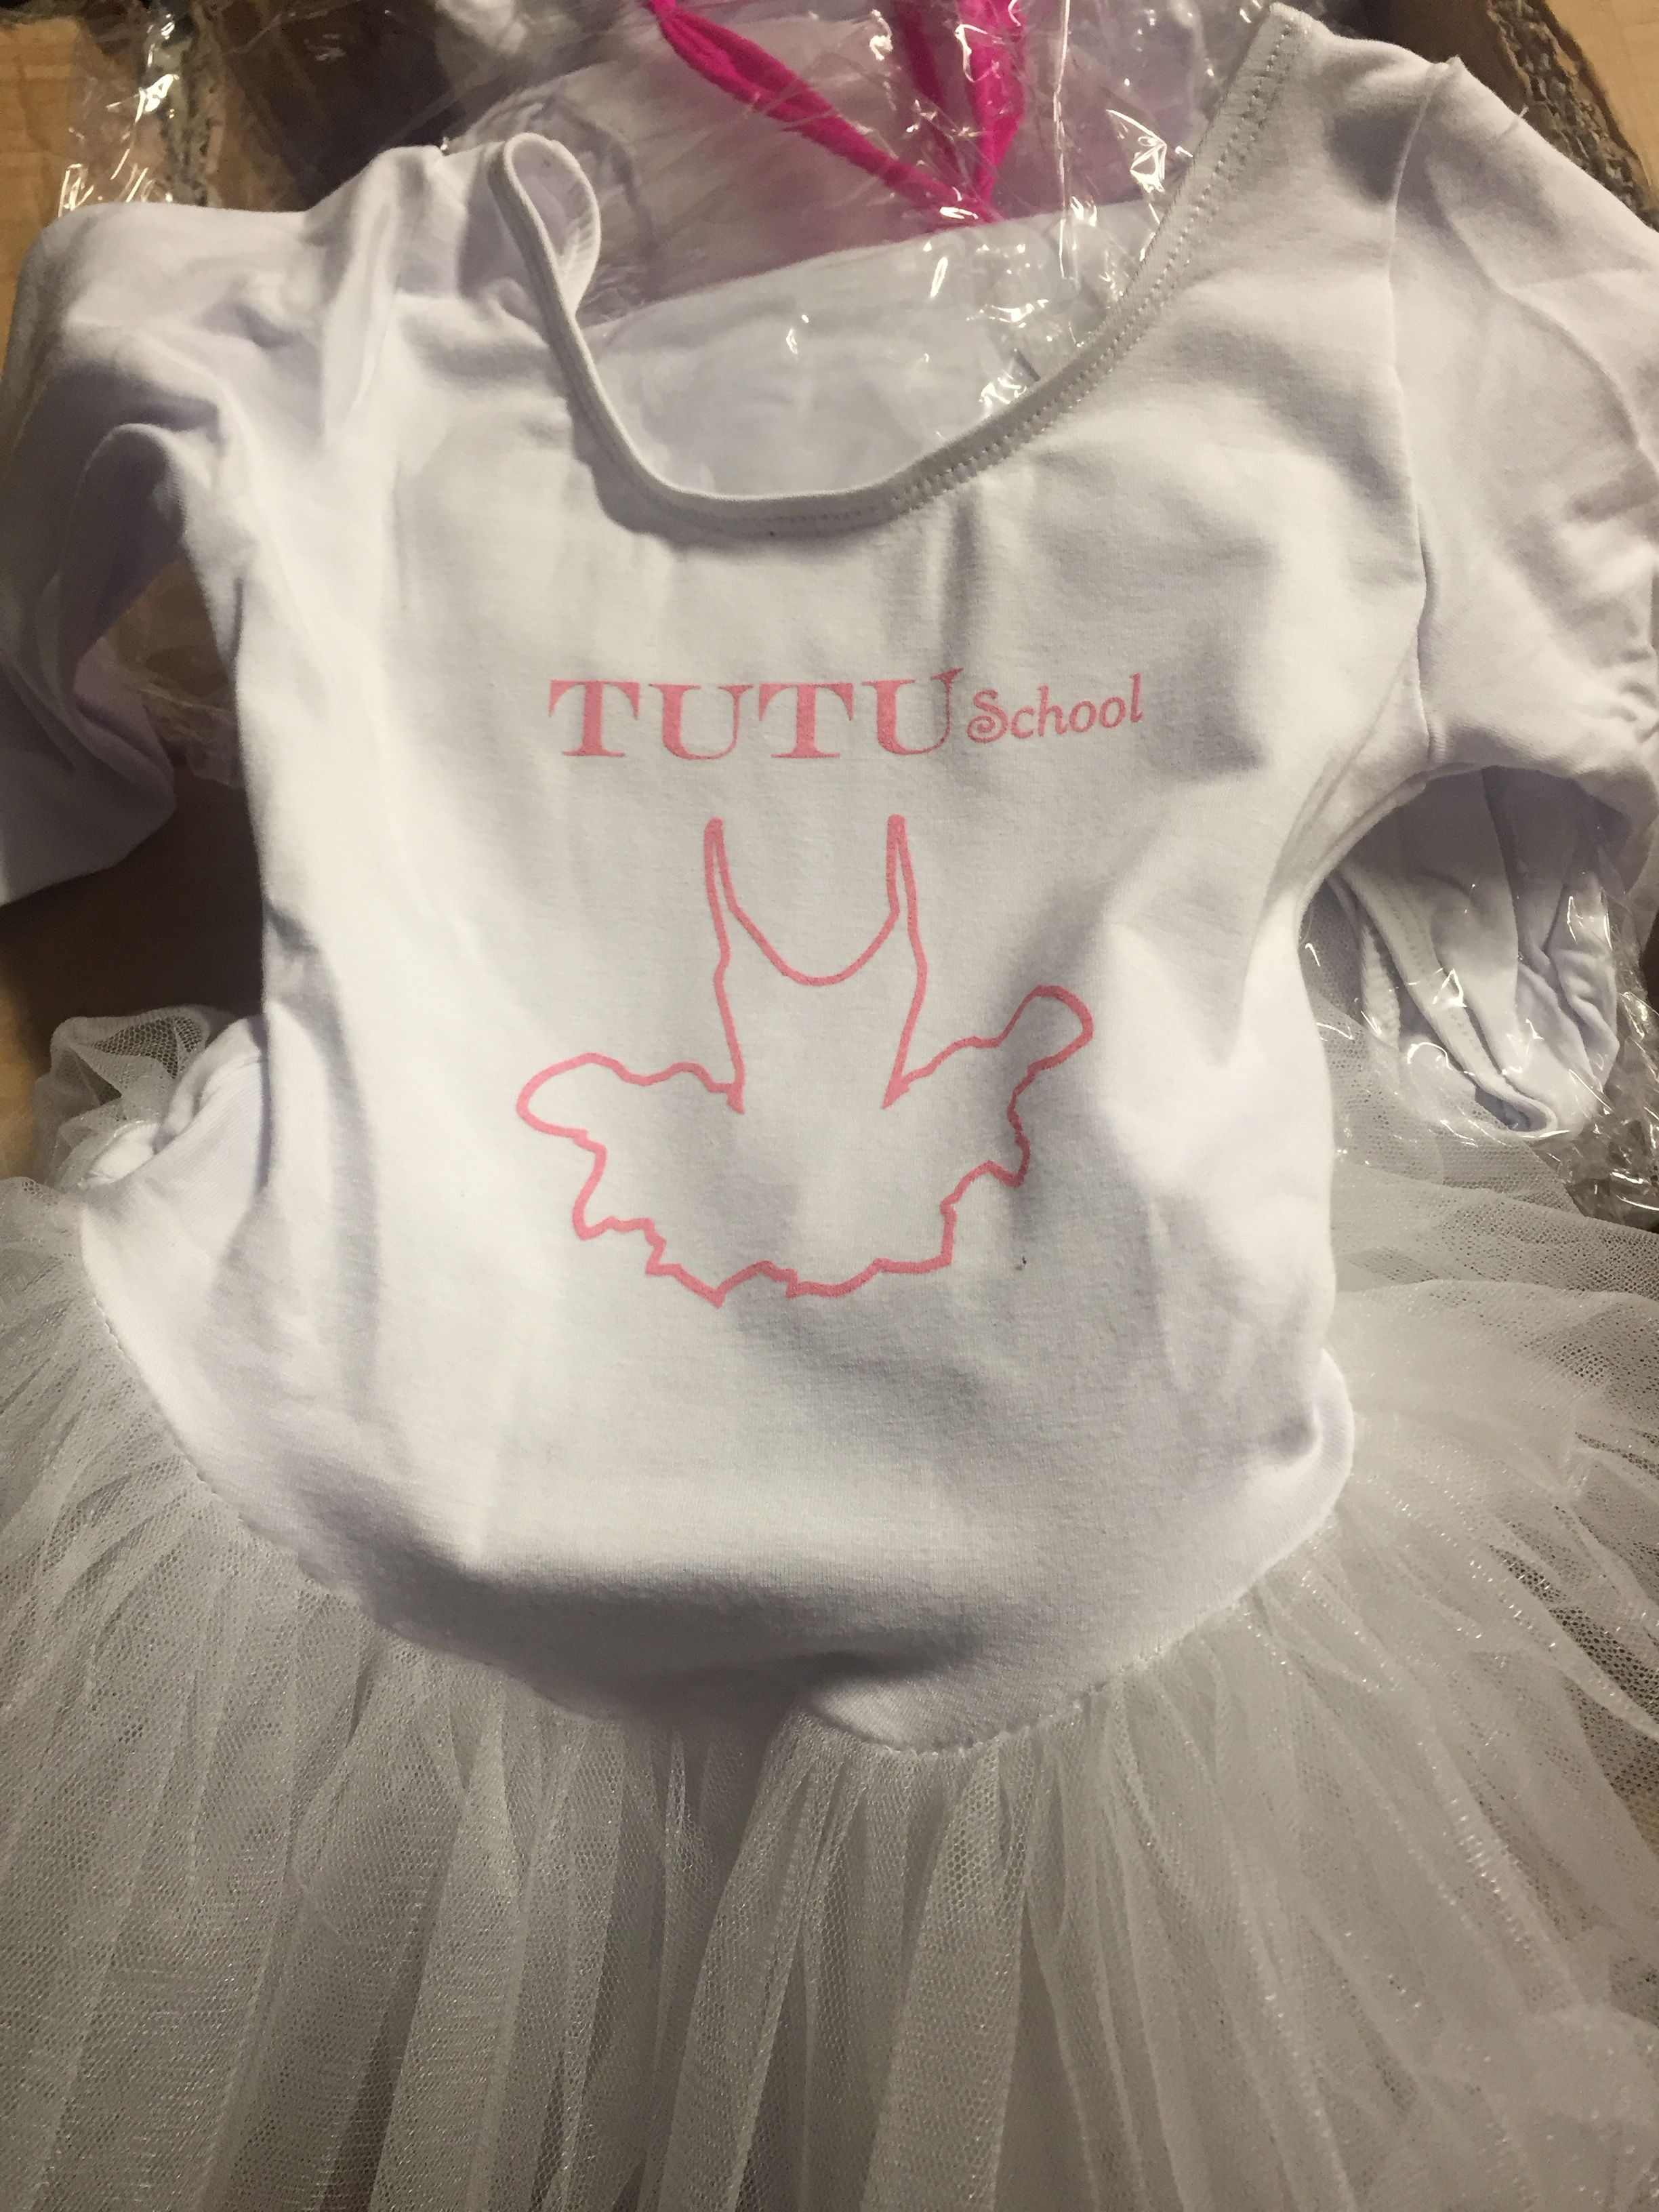 Pin By Creations By Design On Dance Cheer And Arts